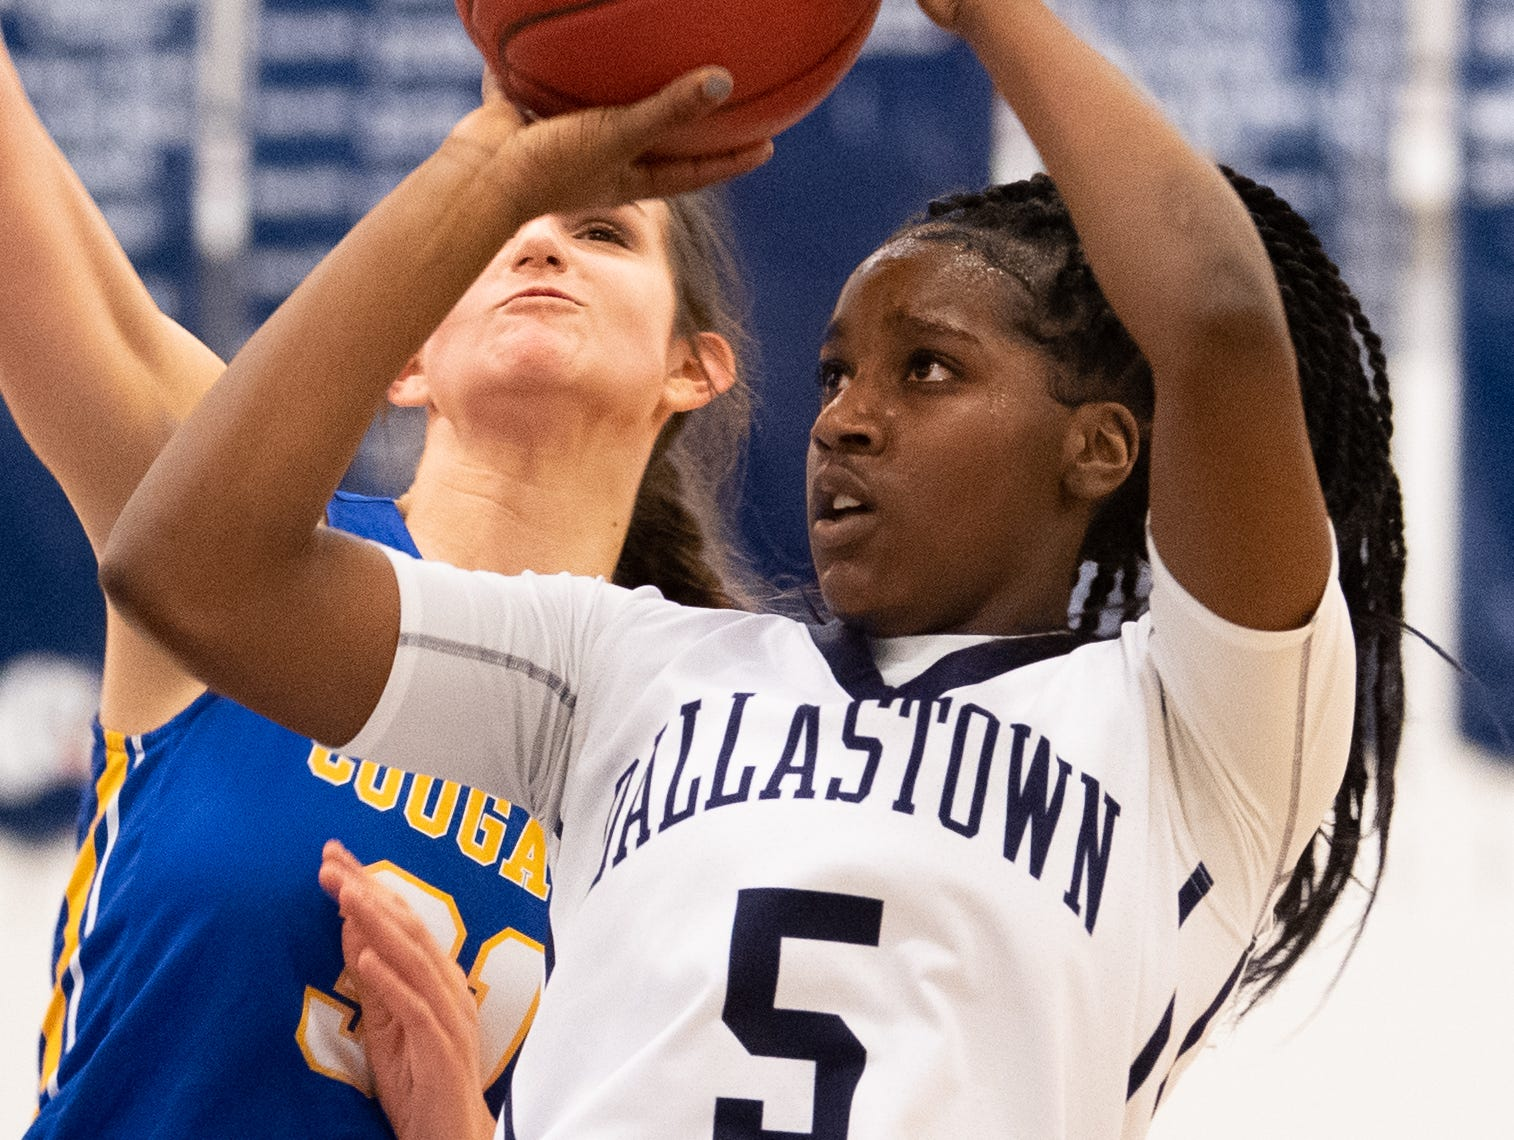 D'Shante Edwards (5) takes the shot during the PIAA first round girls' basketball game between Dallastown and Downingtown East Friday, March 8, 2019 at West York Area High School. The Wildcats are neck and neck with the Cougars.